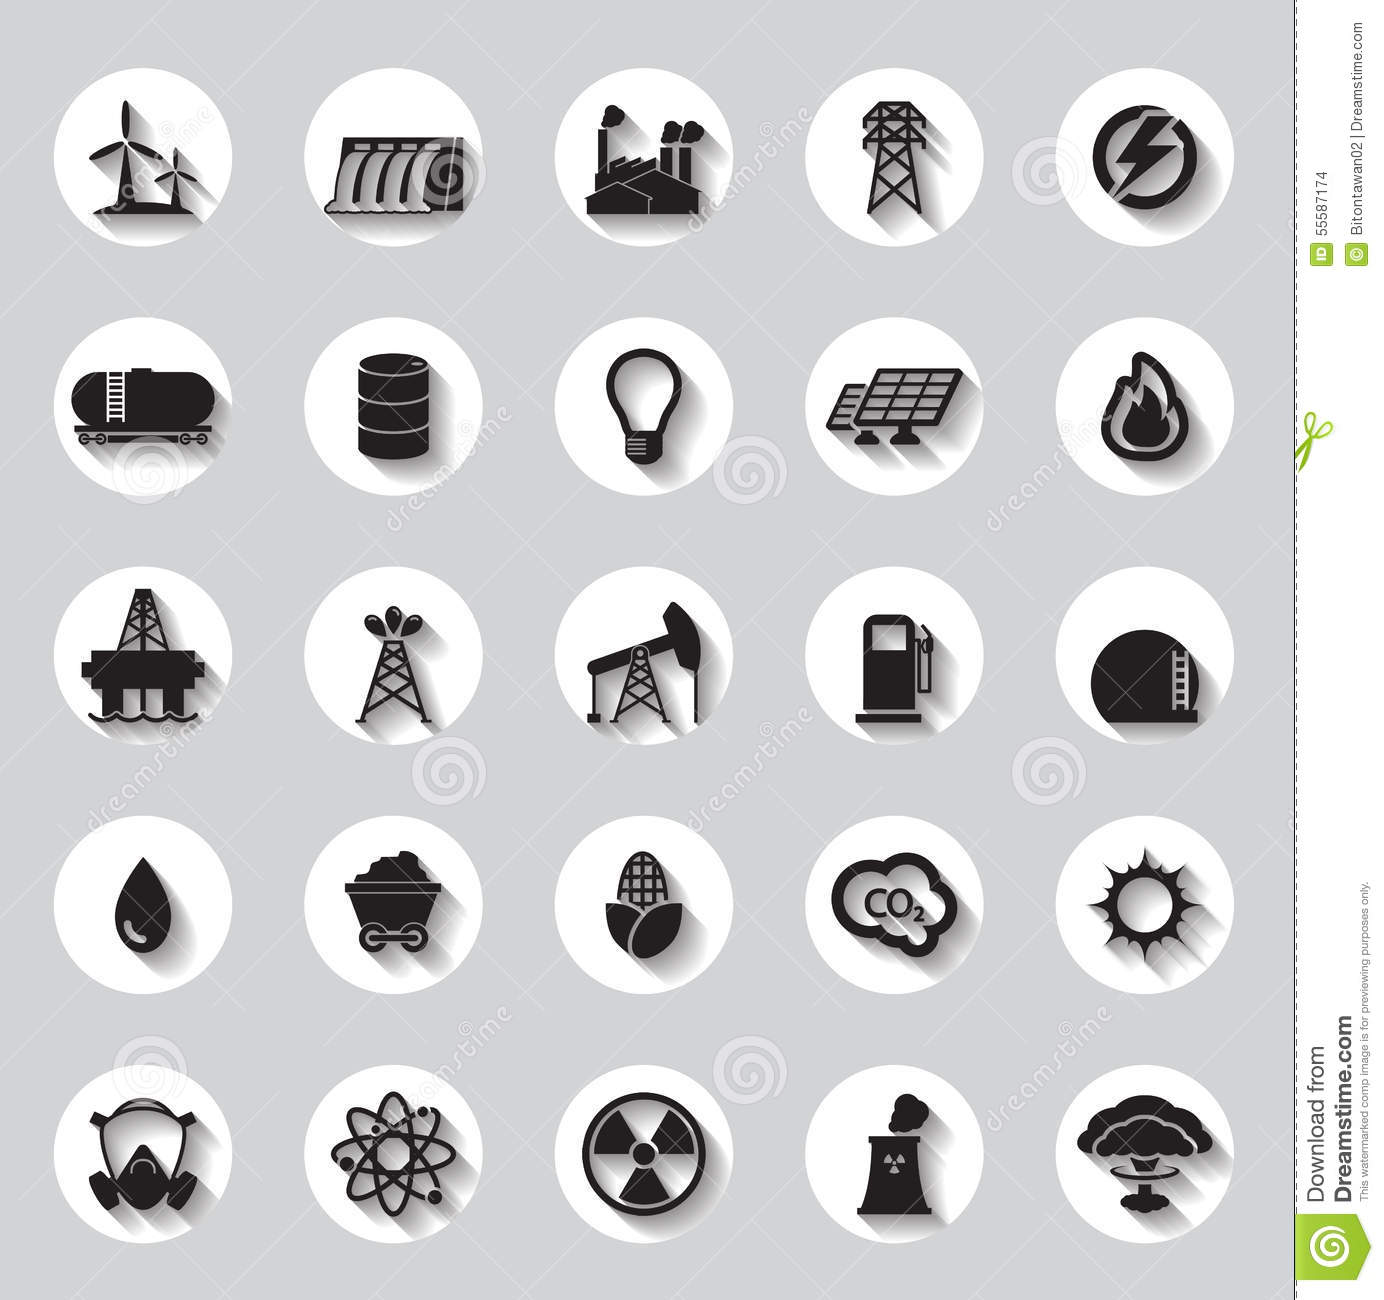 Electricity energy symbols and icons set stock vector energy electricity power icons signs and symbols stock images biocorpaavc Gallery